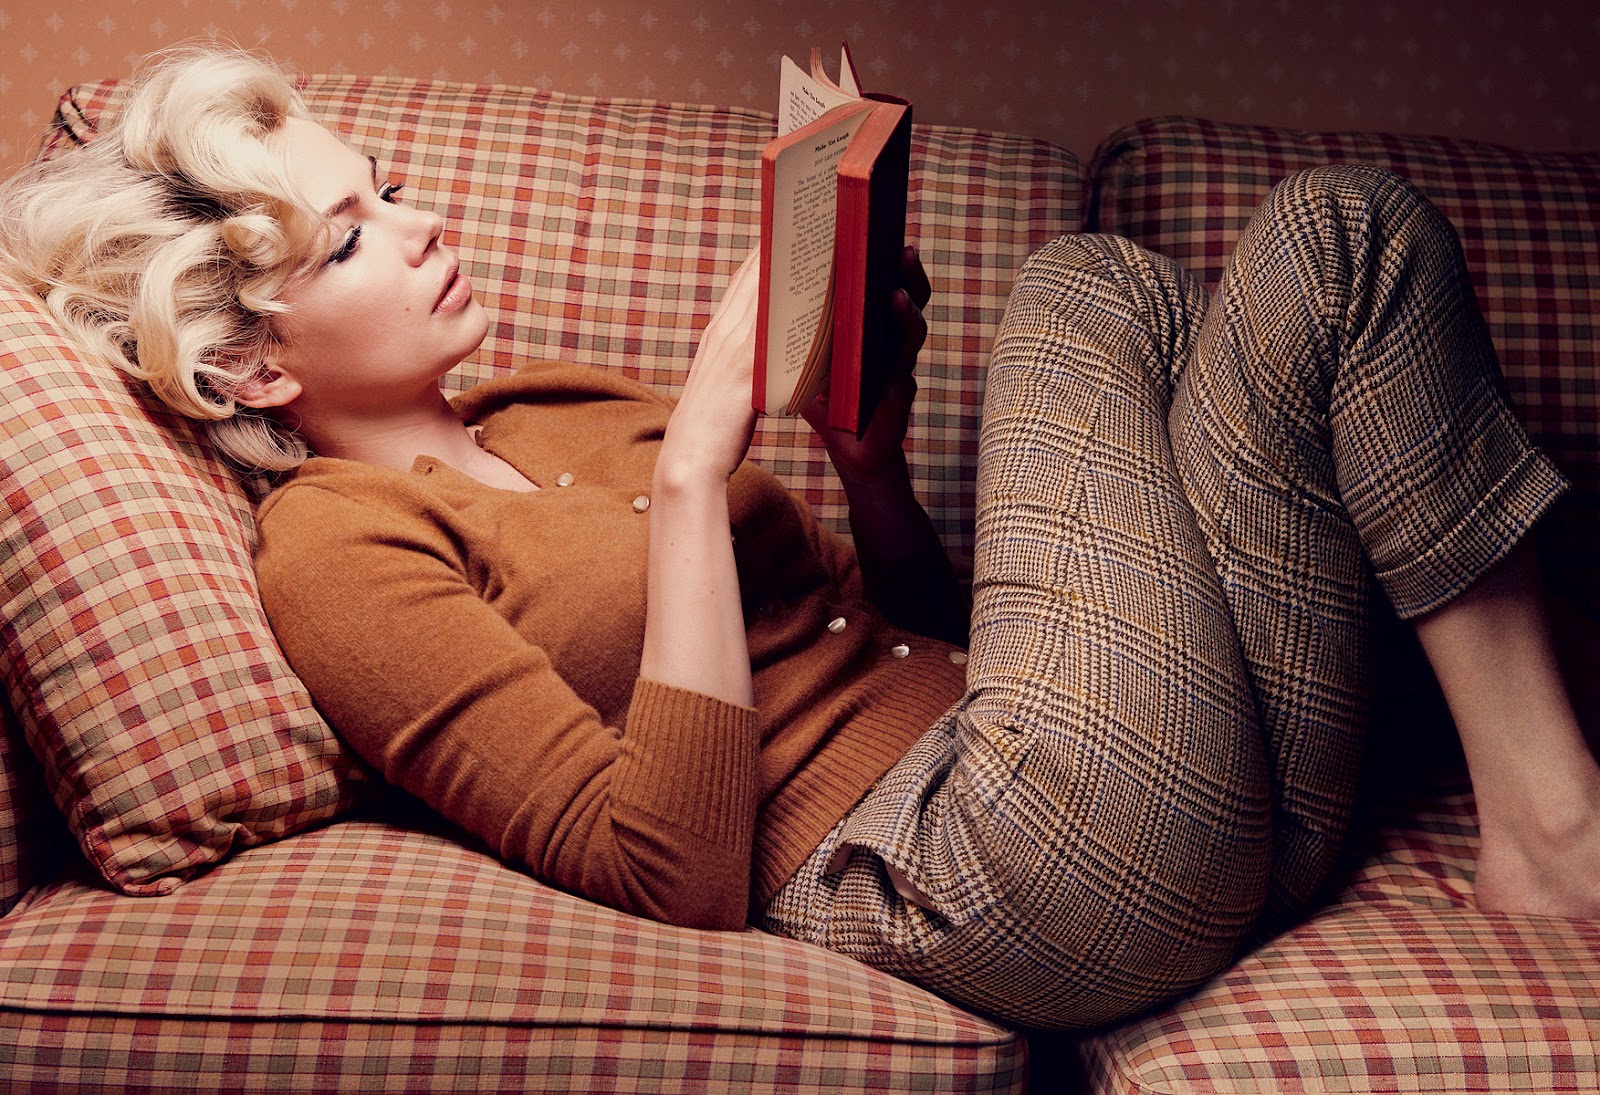 http://1.bp.blogspot.com/-tnuI7Rf1grg/T0fFHitQJ9I/AAAAAAAAIRQ/Ydhj1vrSSgI/s1600/Michelle-Williams-is-Marilyn-Monroe-1.jpg